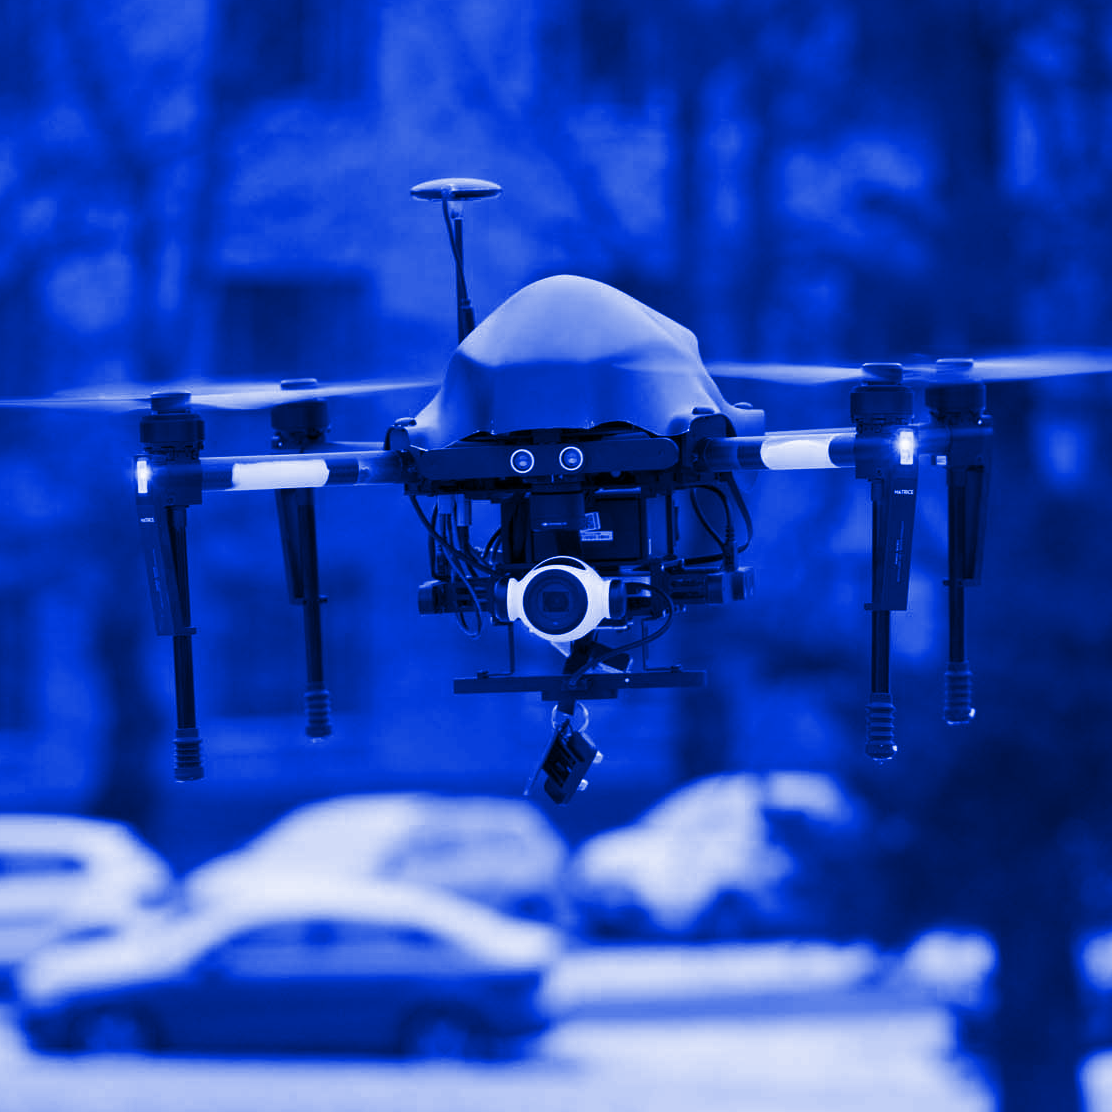 Drone_blue_square.png